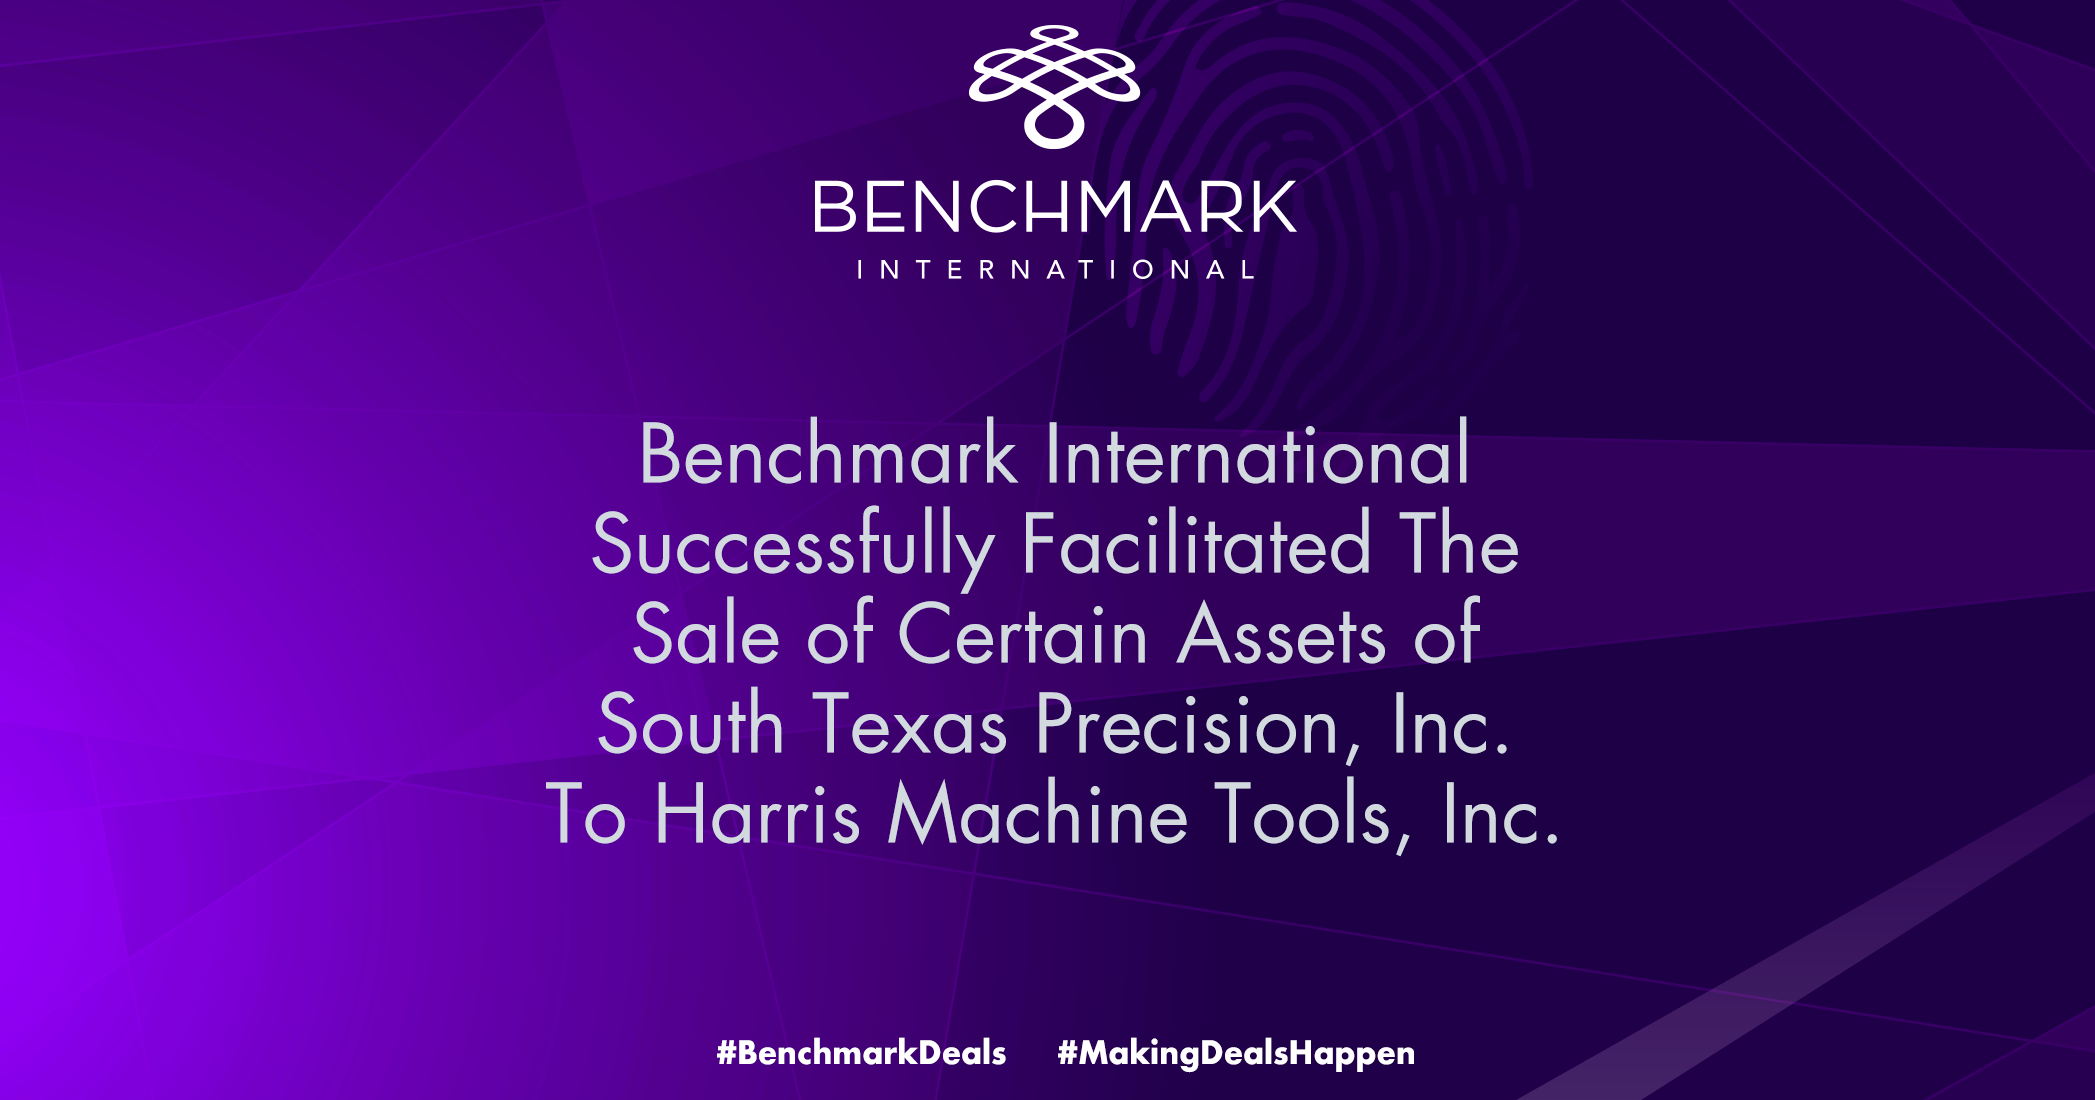 Benchmark International Successfully Facilitated The Sale of Certain Assets of South Texas Precision, Inc. To Harris Machine Tools, Inc.